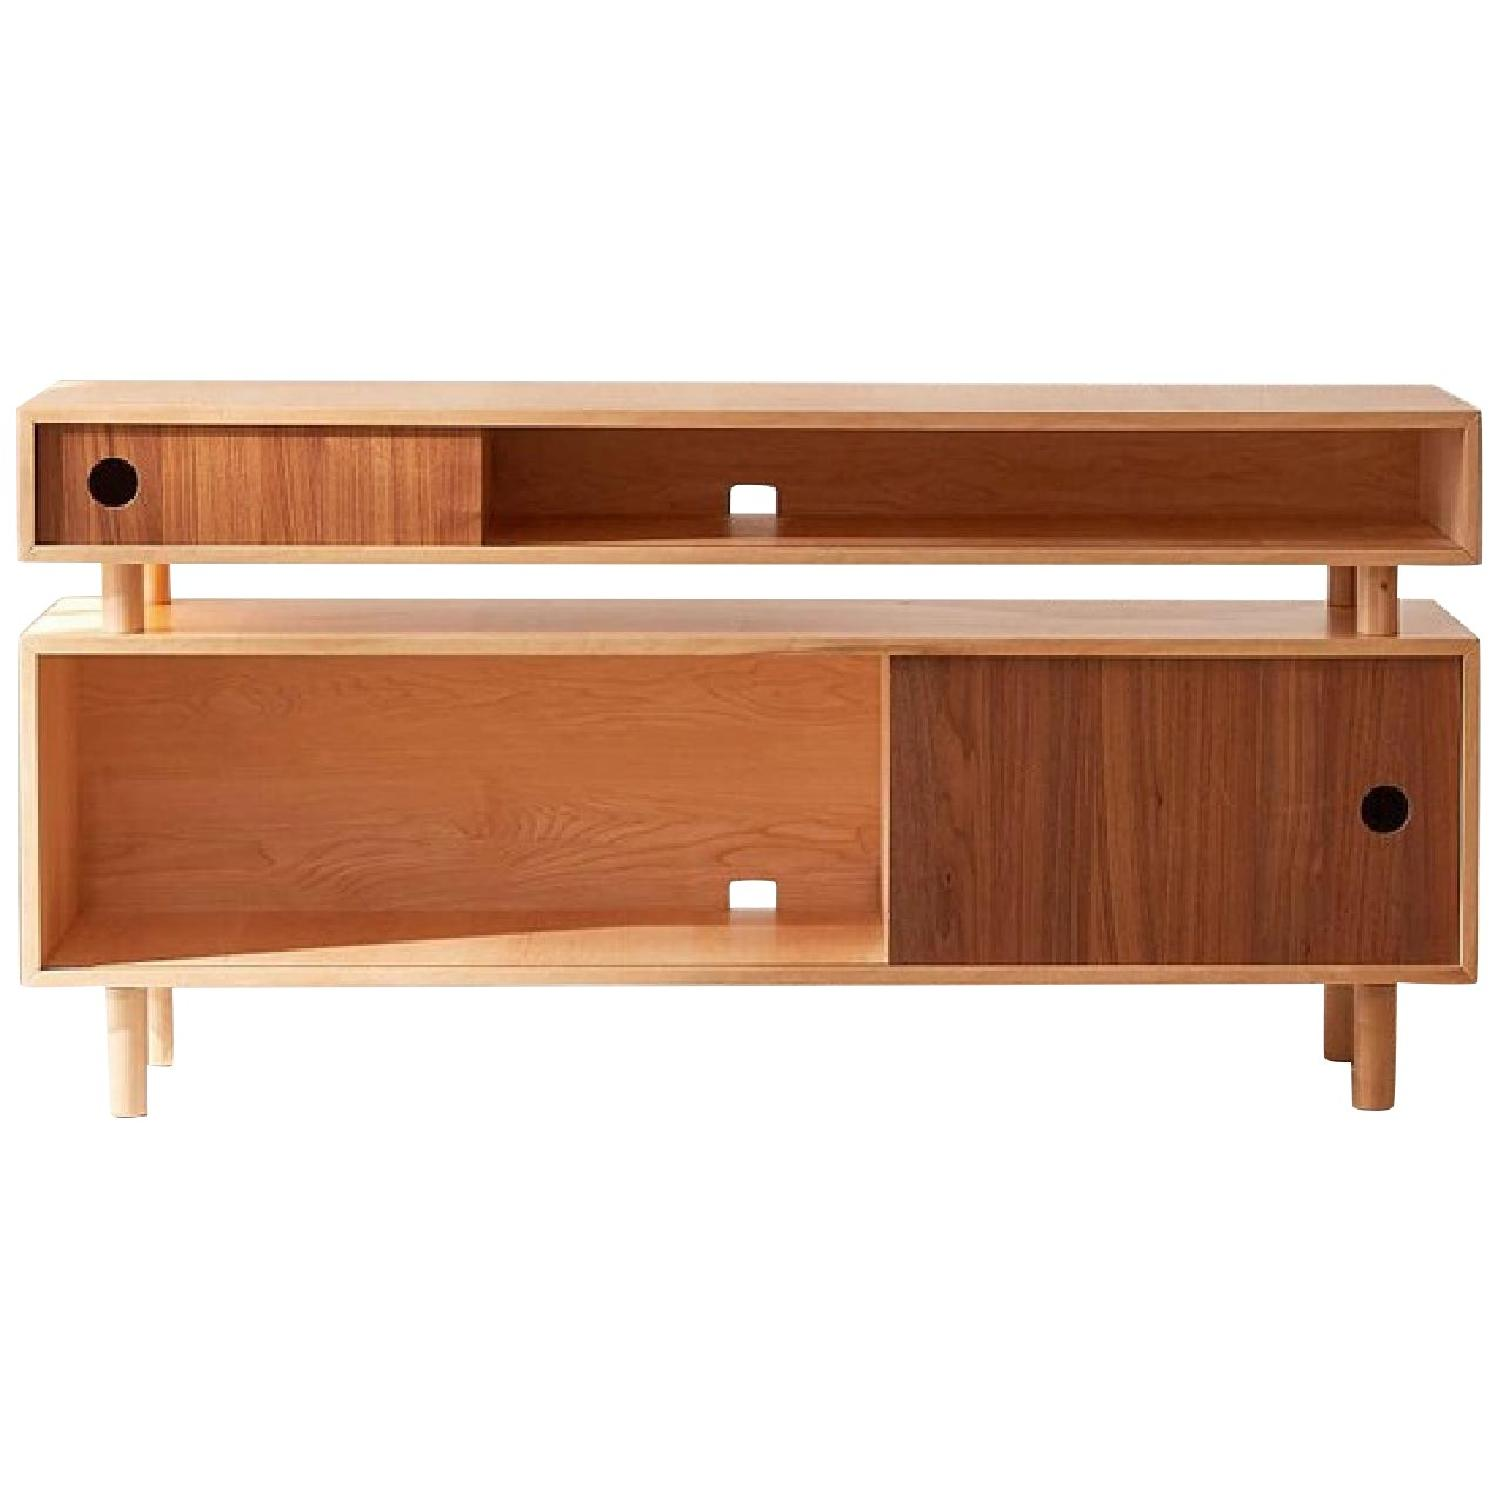 Urban Outfitters Hamilton Wood Media Console - image-0